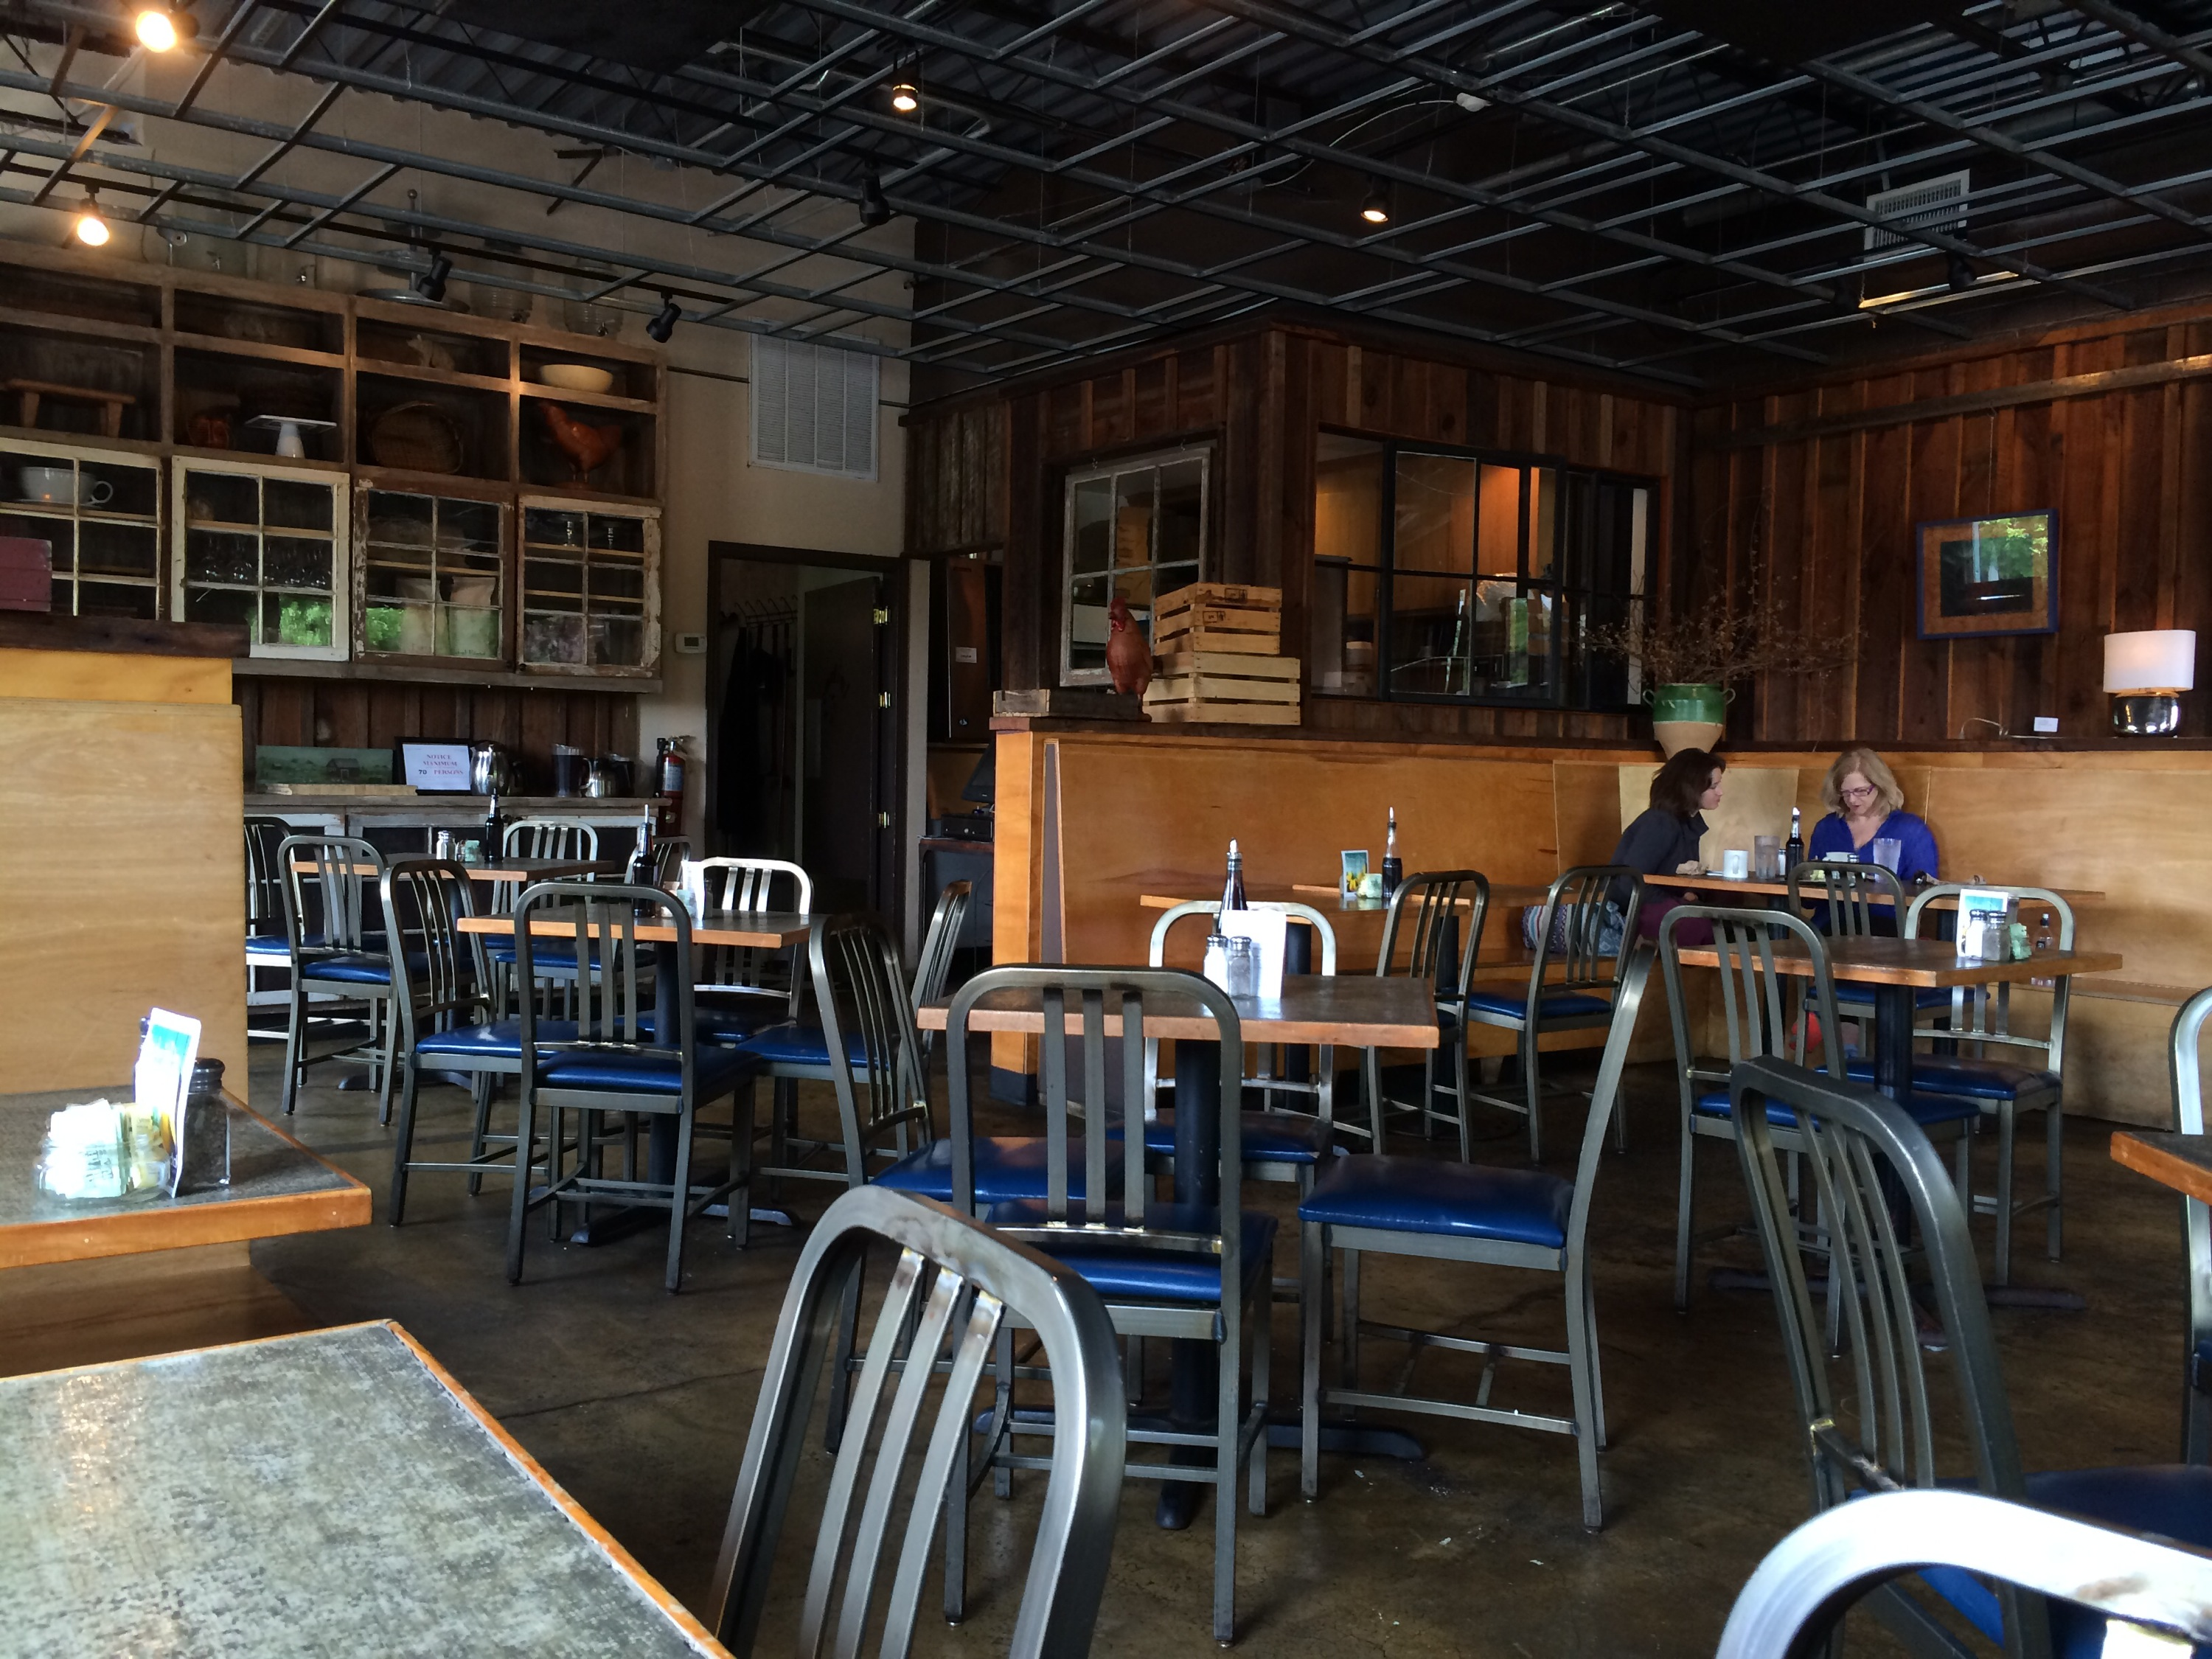 Vegan Atlanta – Eco-Friendly Radial Cafe